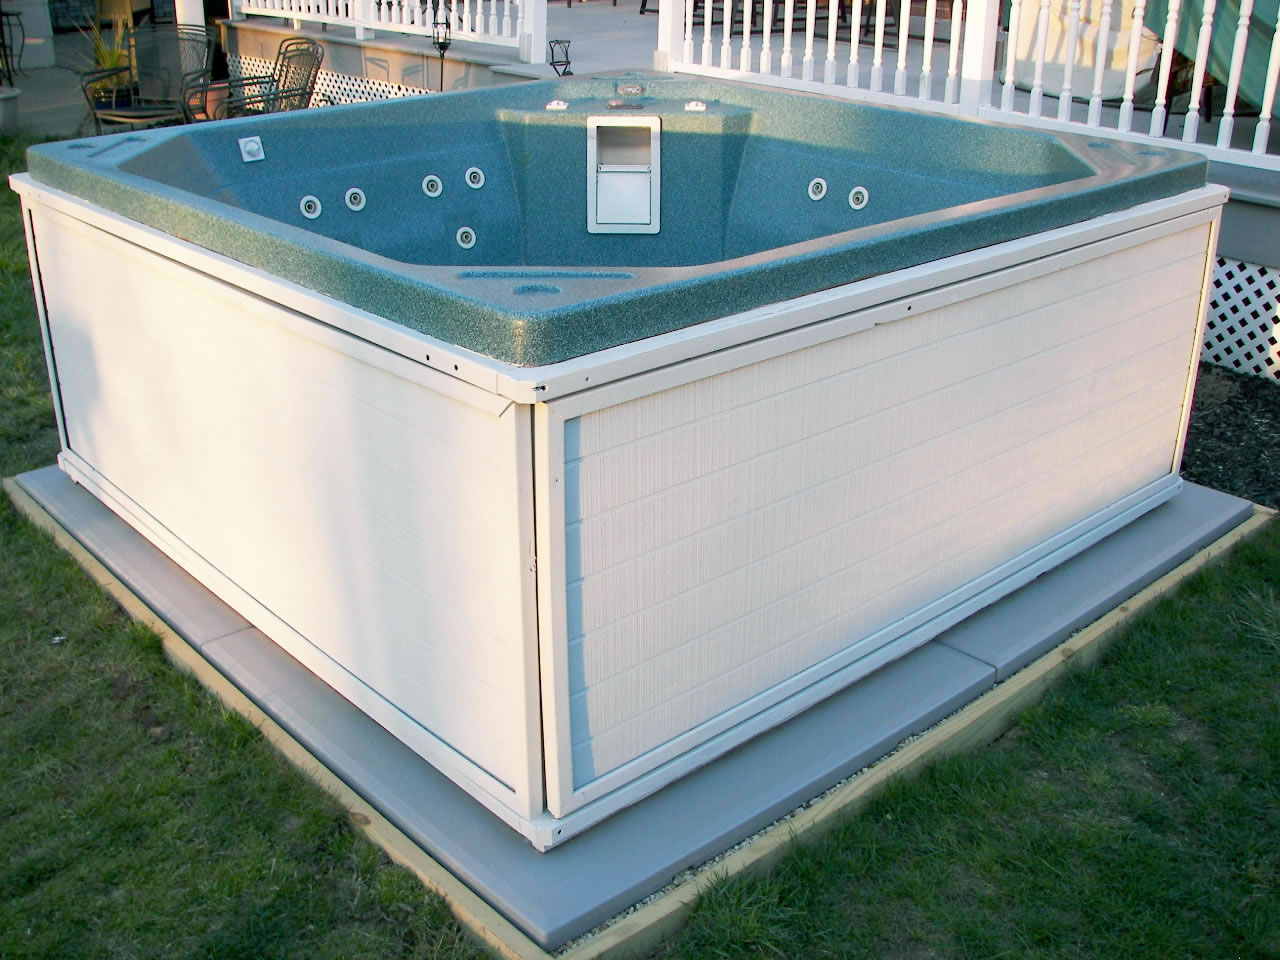 Ez Pad Hot Tub Spa Base Photos Pics And Testimonials Reviews How To Install A Spa Hot Tub Base No Concrete No Sand Insulates From Groundreal People Discuss Spa And